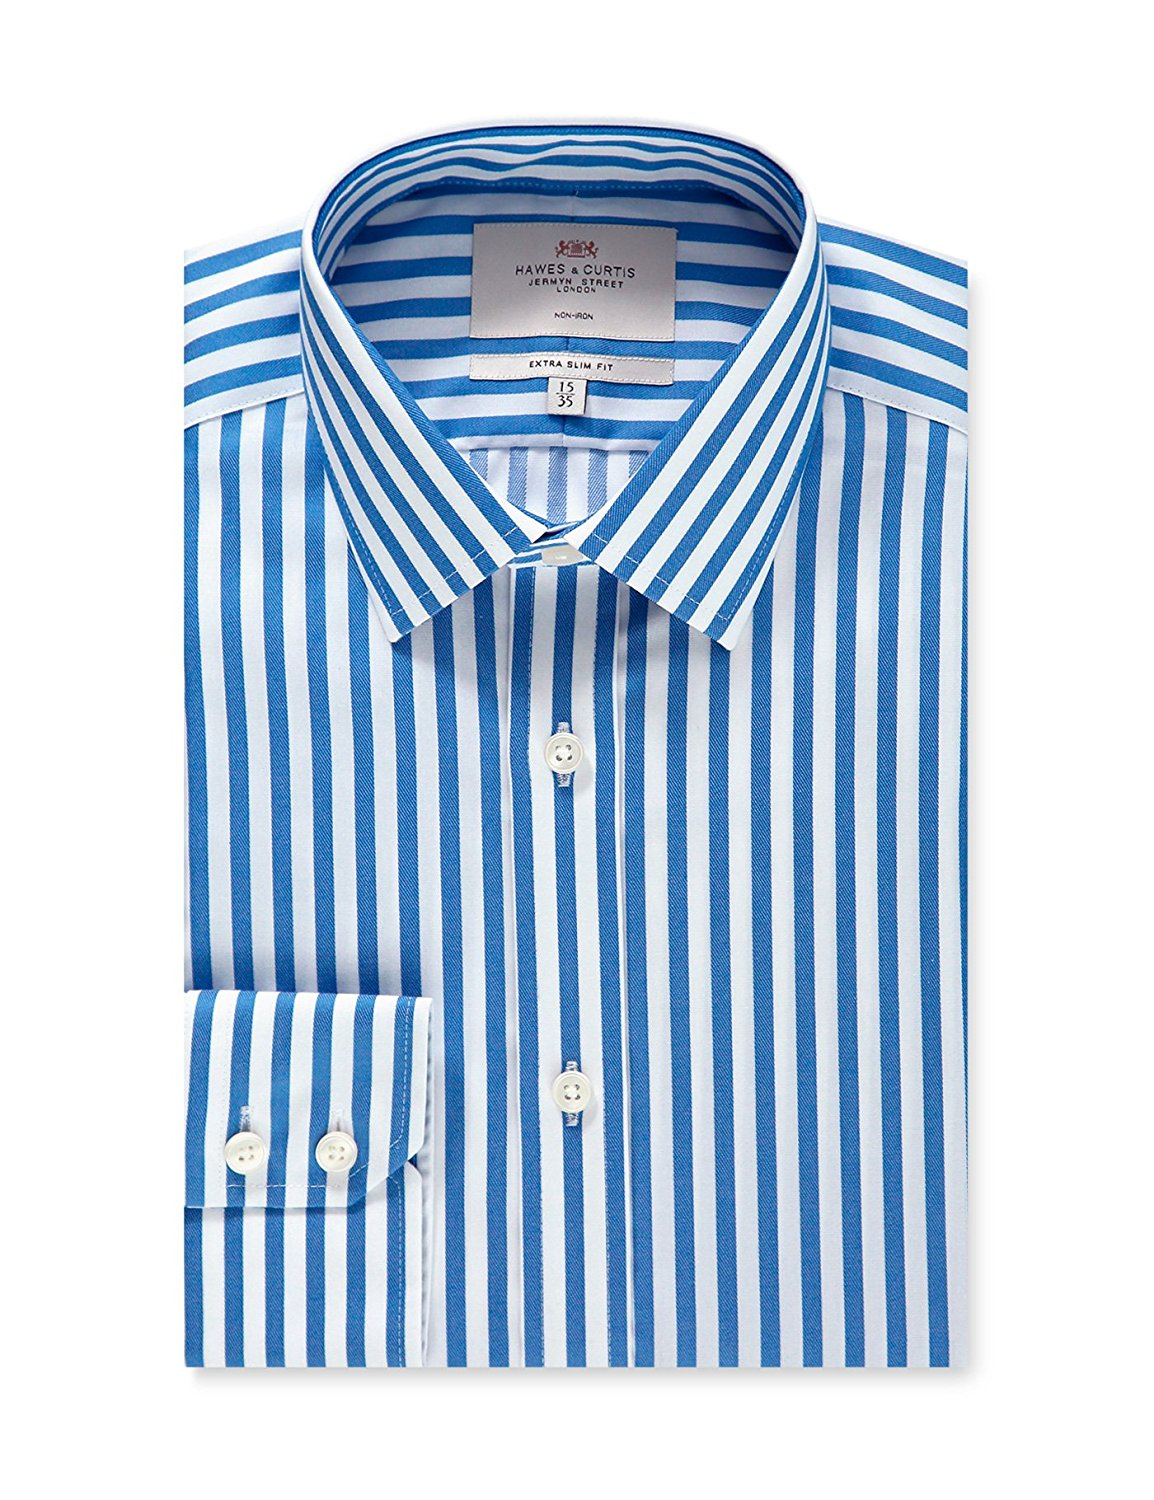 Cheap Slim Fit Double Cuff Shirt Find Slim Fit Double Cuff Shirt